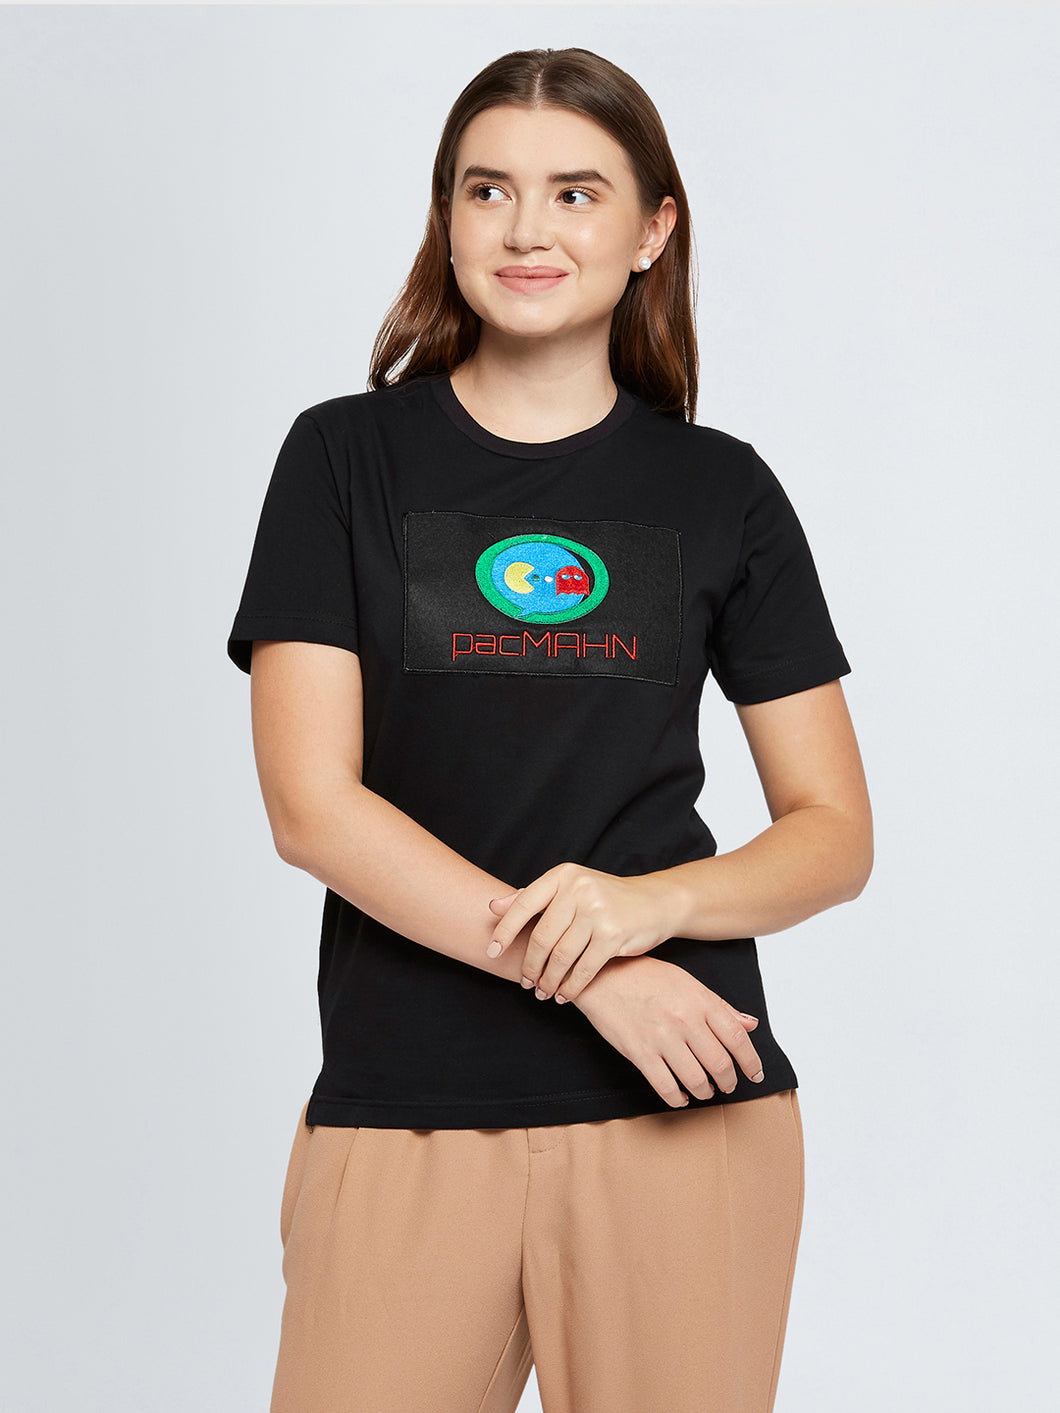 PacMAHN Embroidered T-shirt